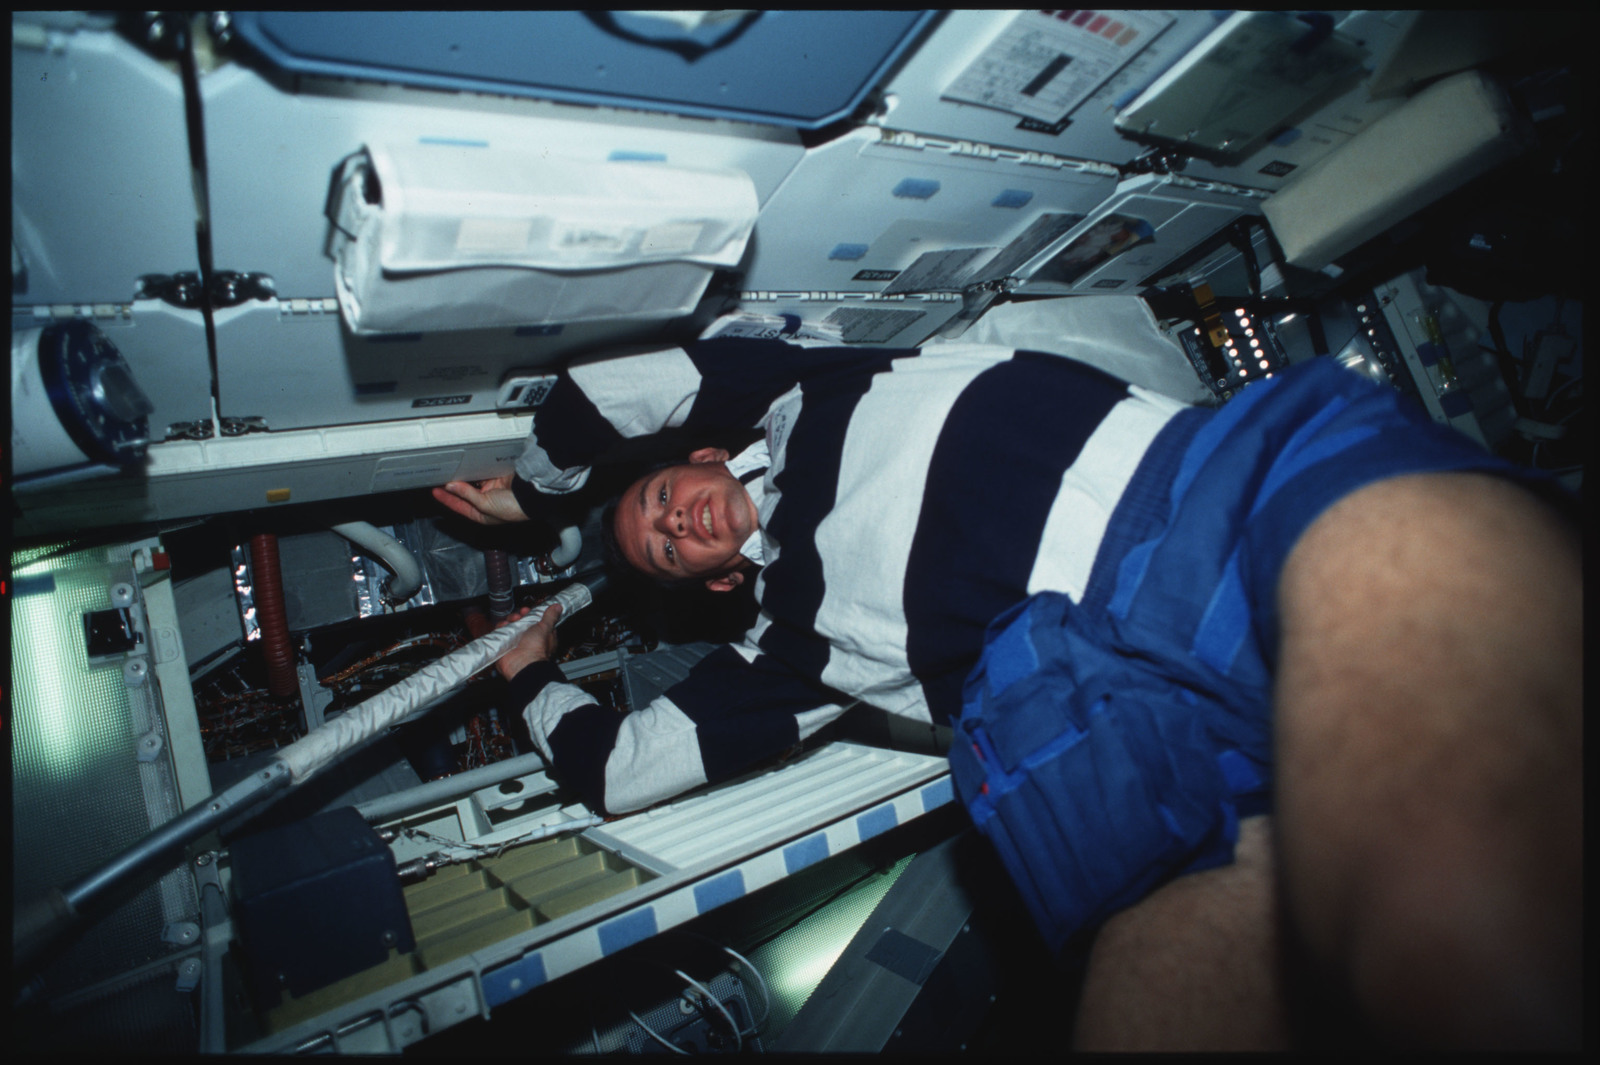 S45-14-020 - STS-045 - STS-45 crewmembers engaged in orbiter maintenance